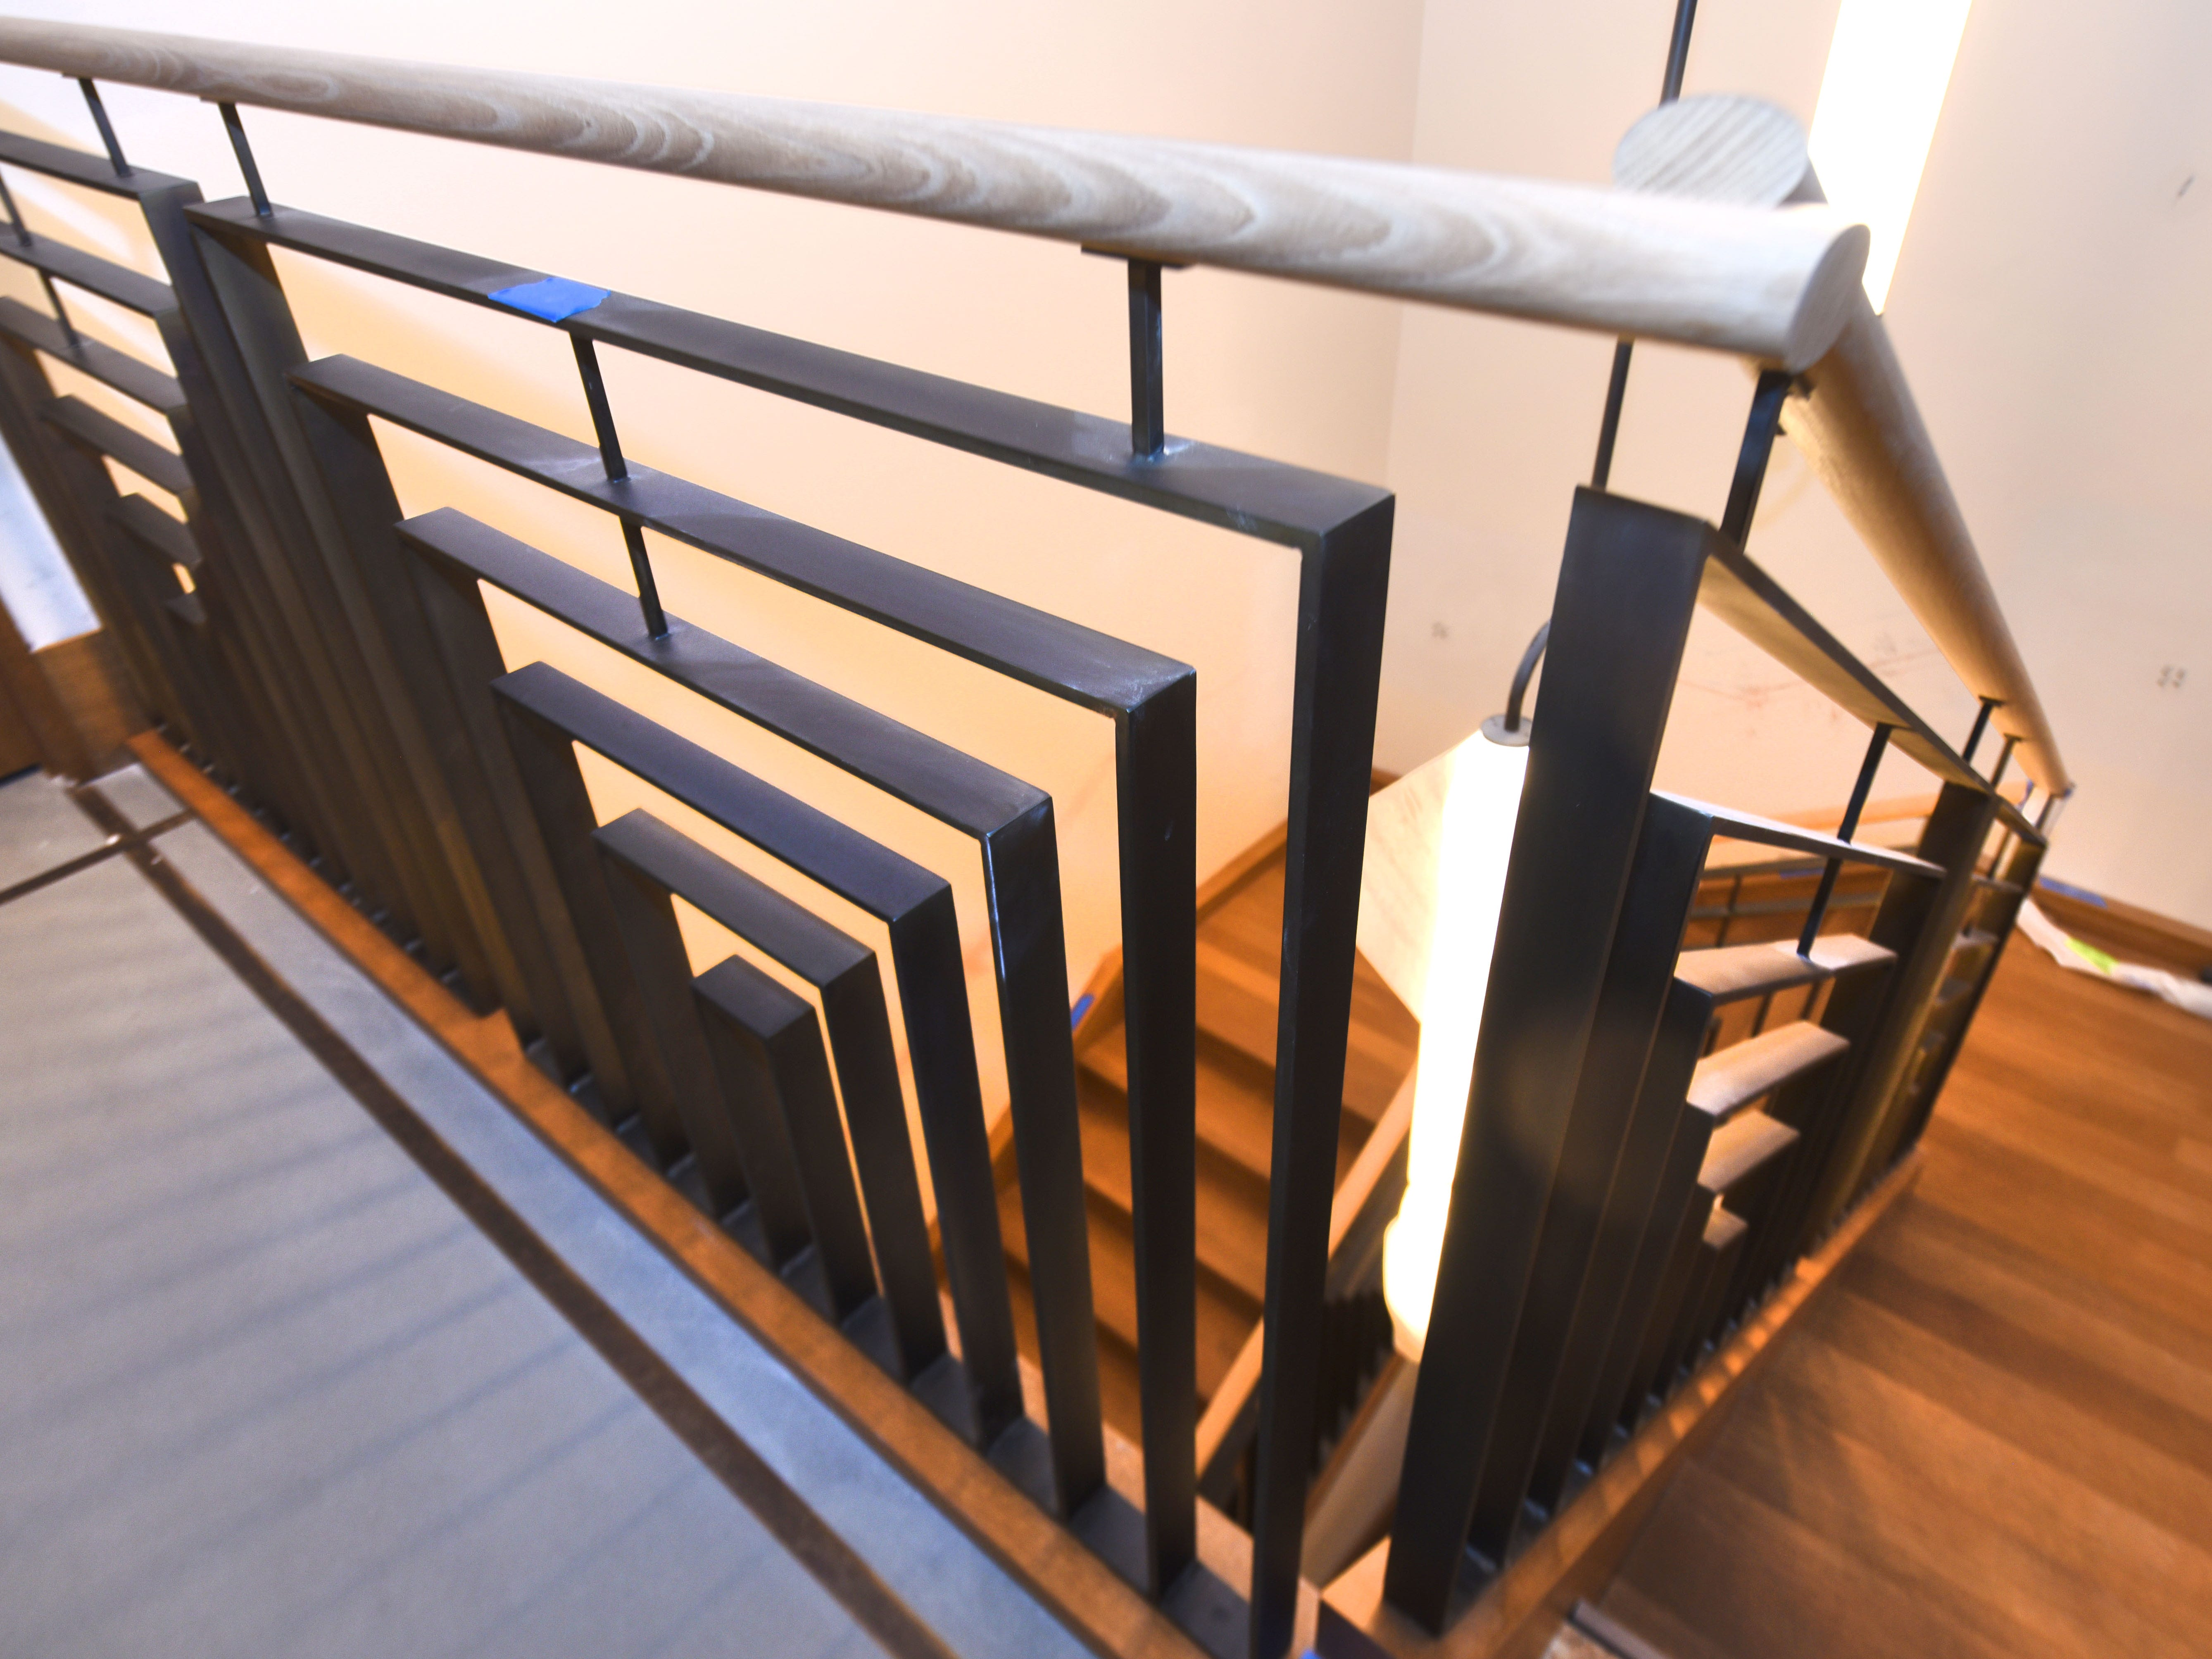 A steel and wood railing leads to the upper guest rooms.